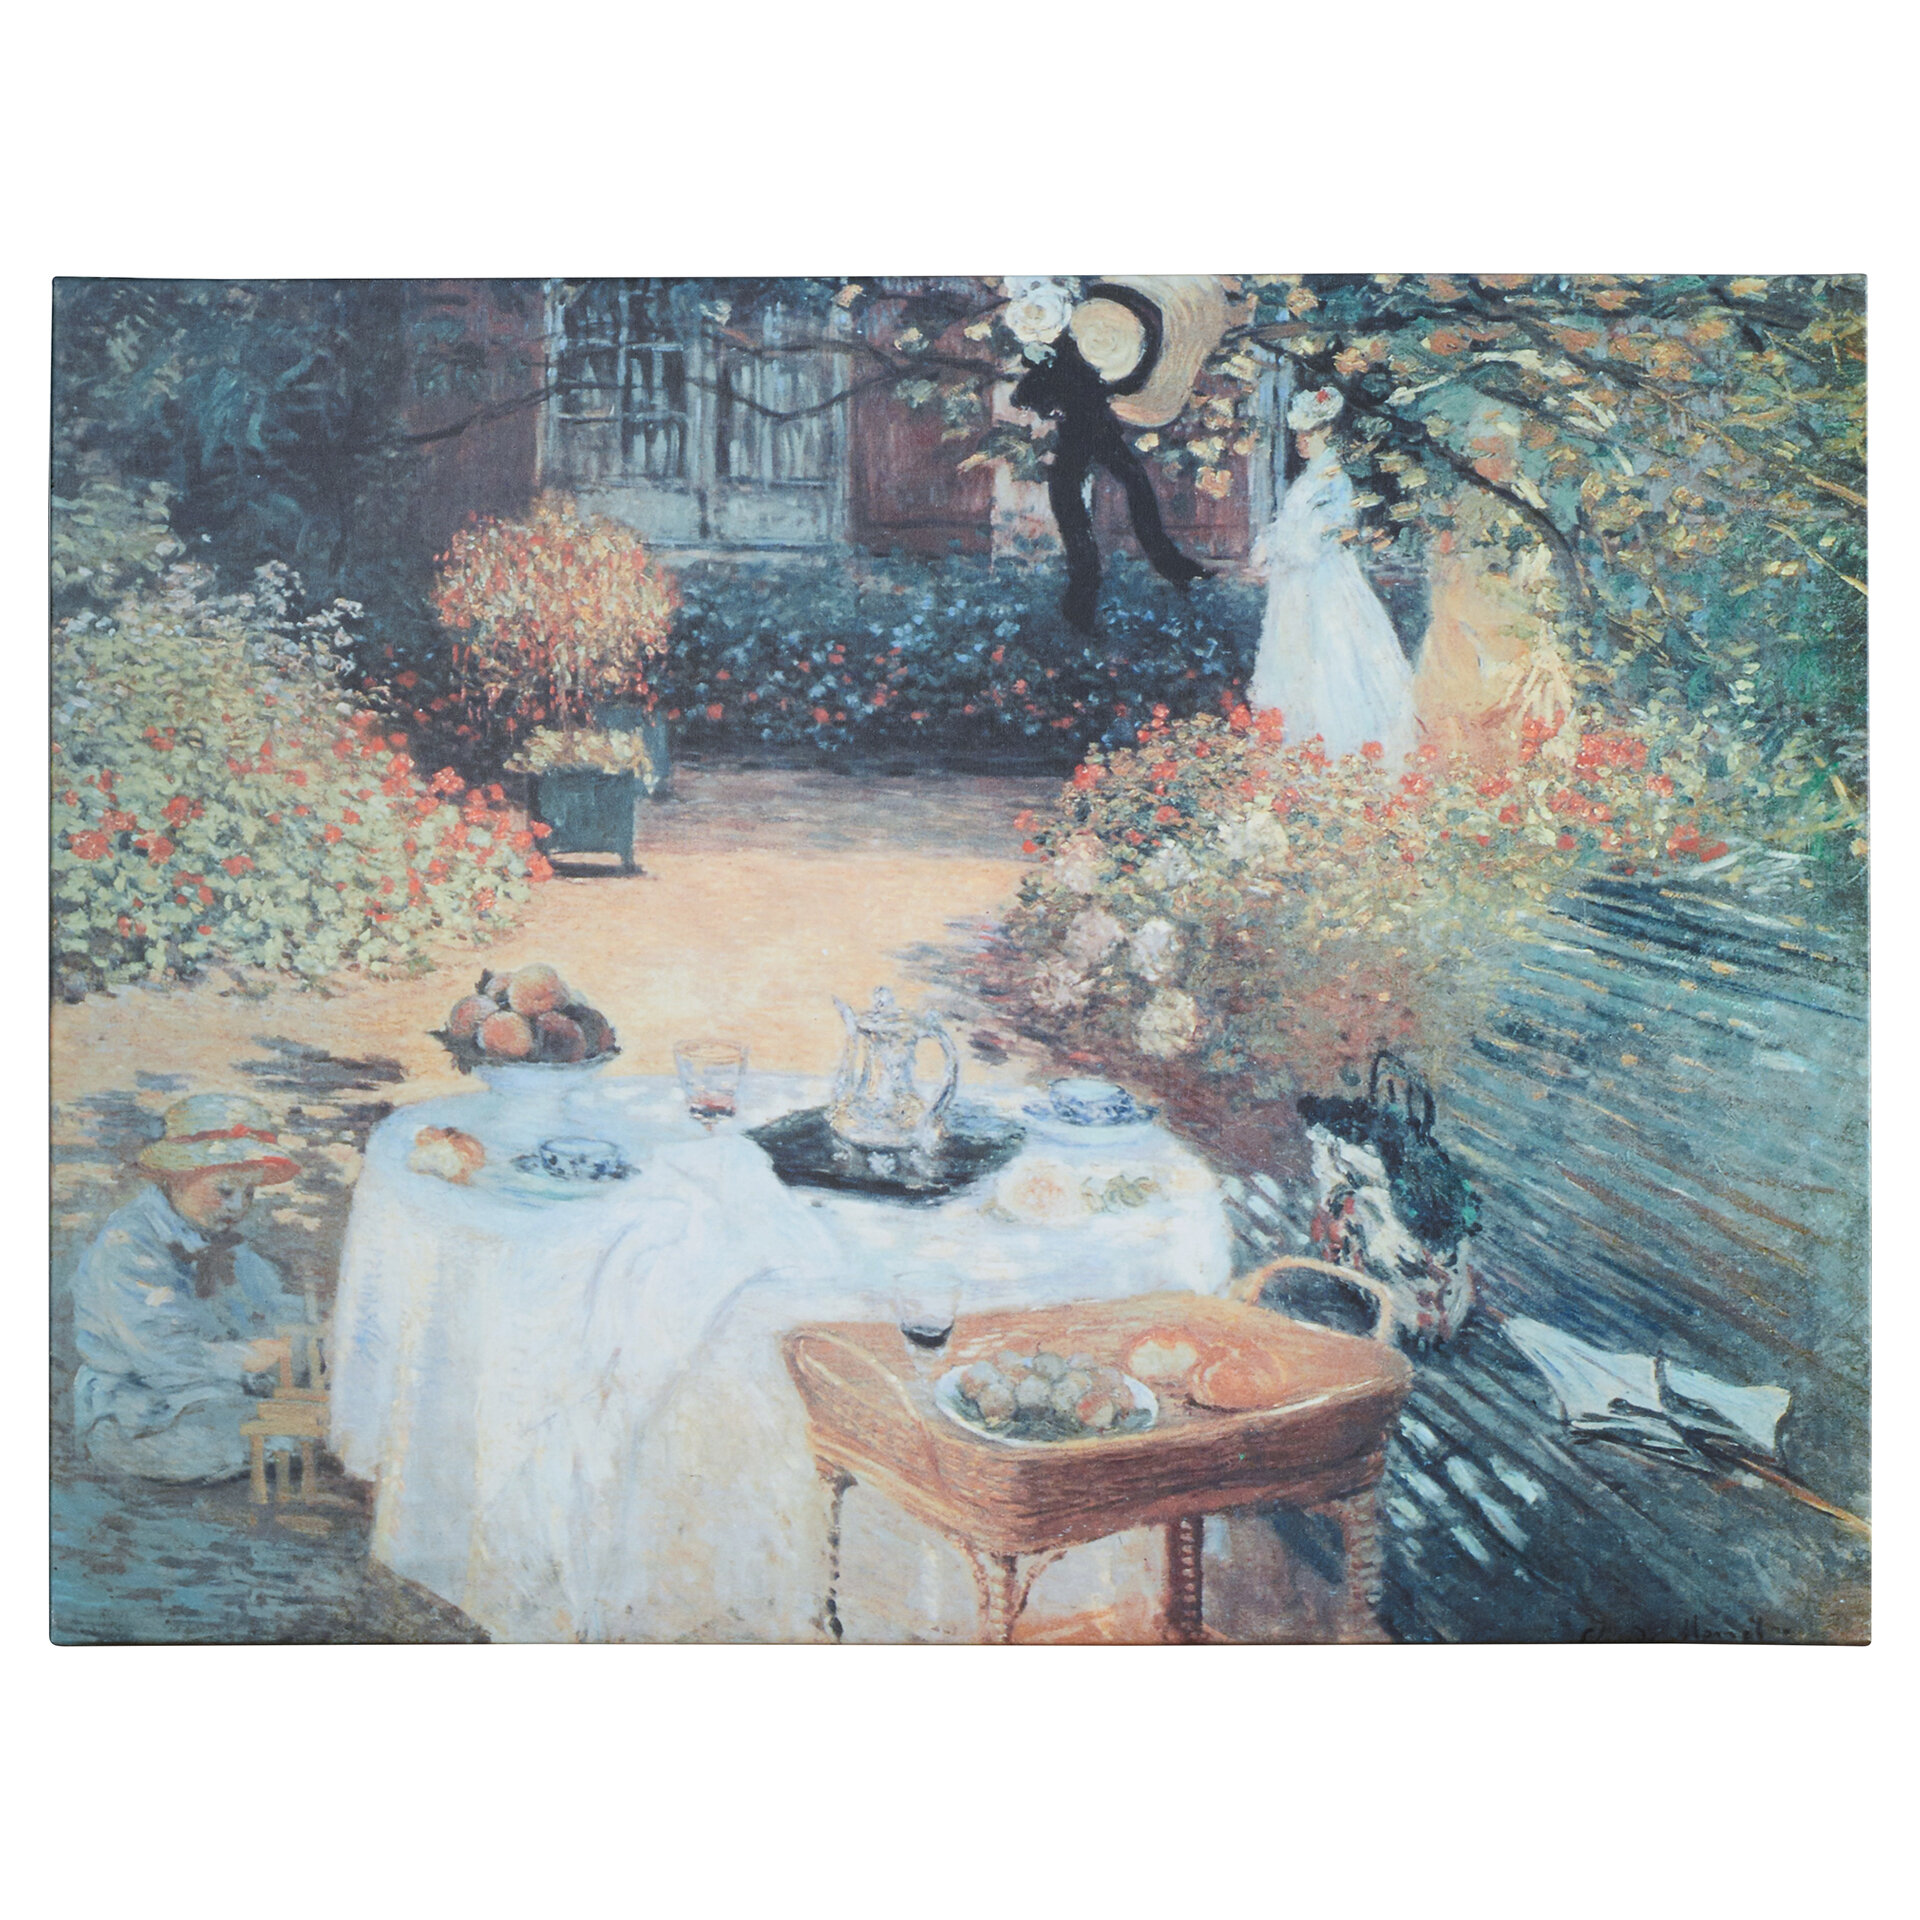 Woman with sunshade by Claude Monet Giclee Fine Art Print Reproduction on Canvas